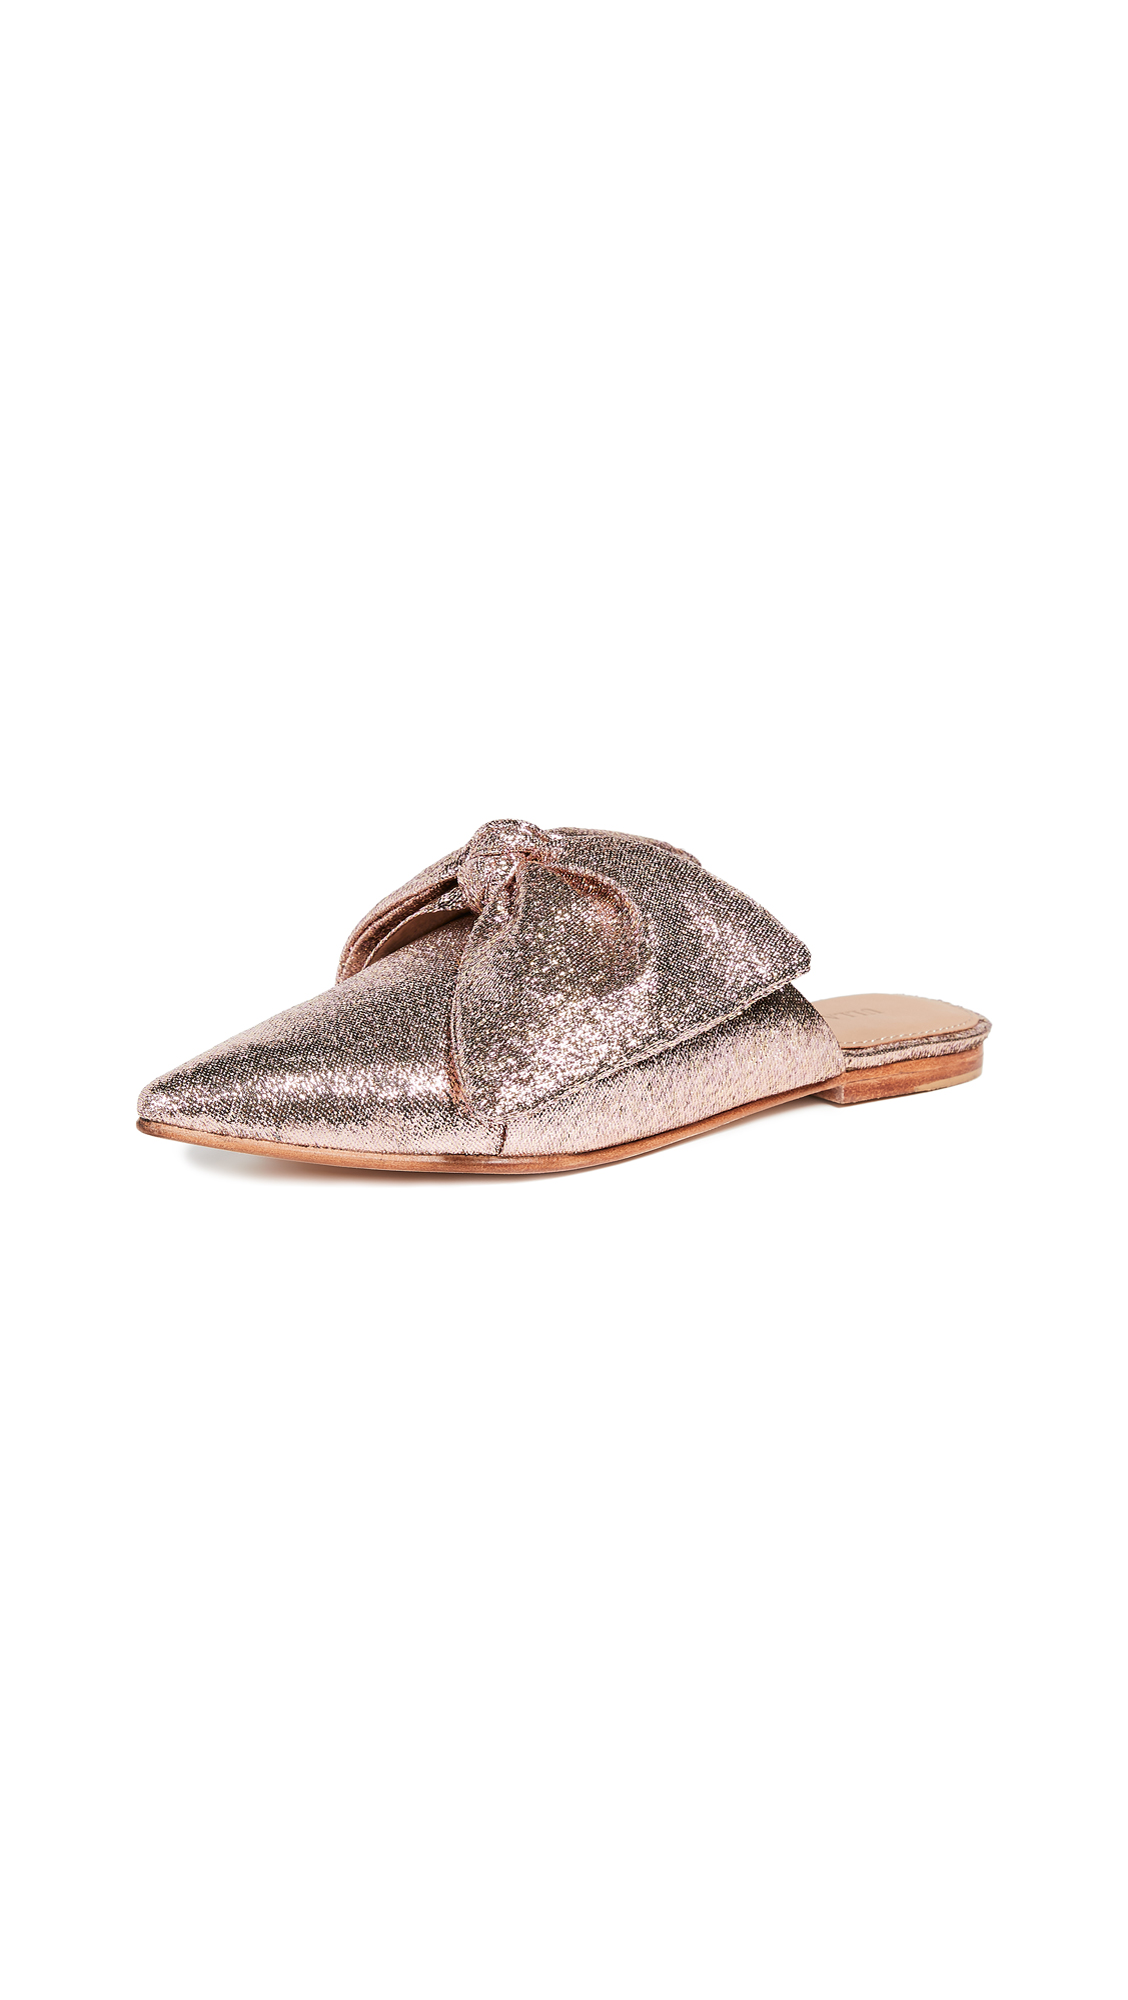 Ulla Johnson Perry Mules - Sparkle